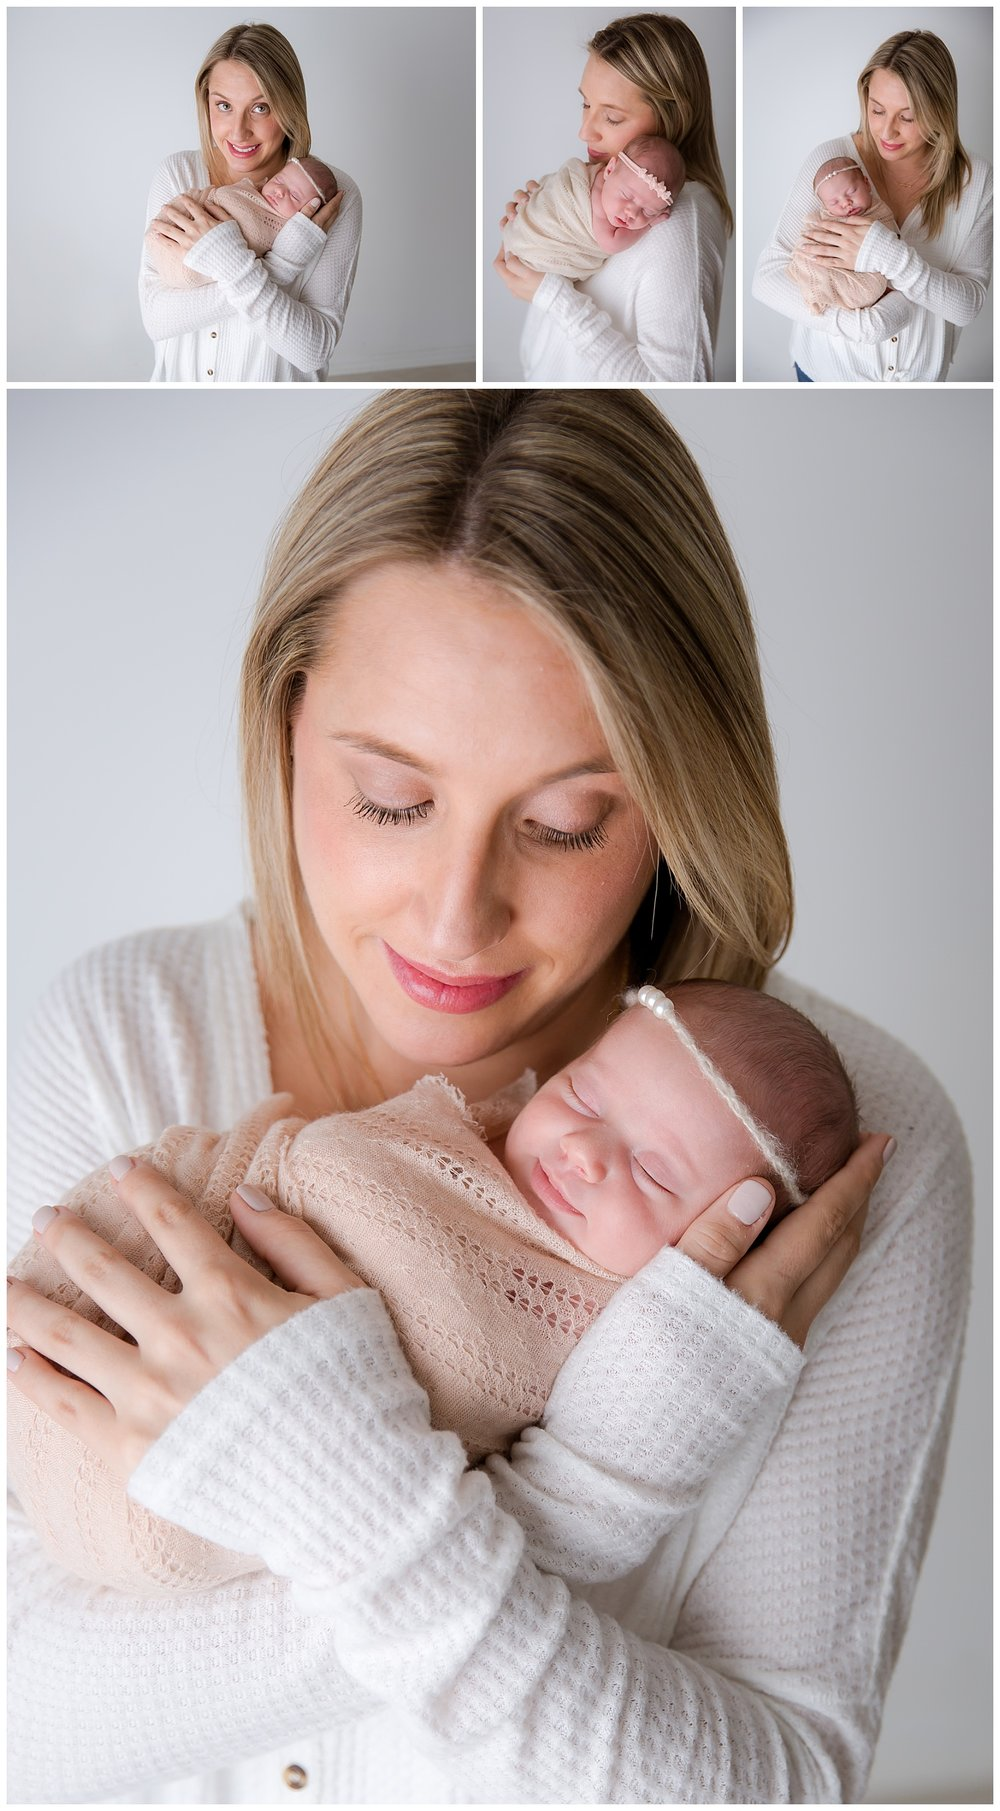 baby girl being held by her mom in new jersey newborn photo shoot